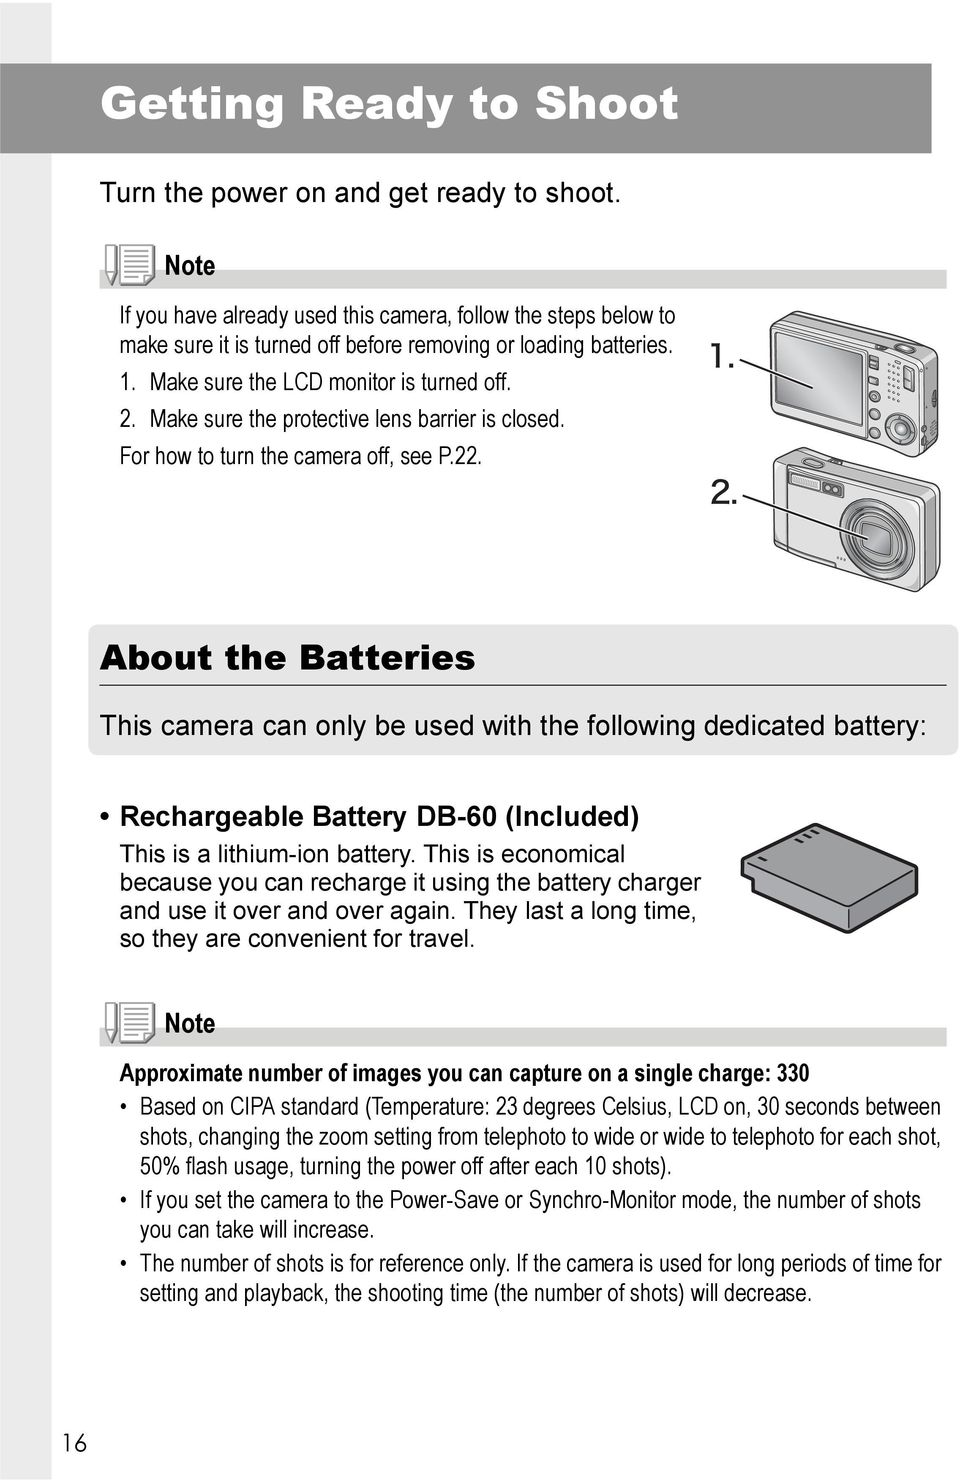 About the Batteries This camera can only be used with the following dedicated battery: Rechargeable Battery DB-60 (Included) This is a lithium-ion battery.